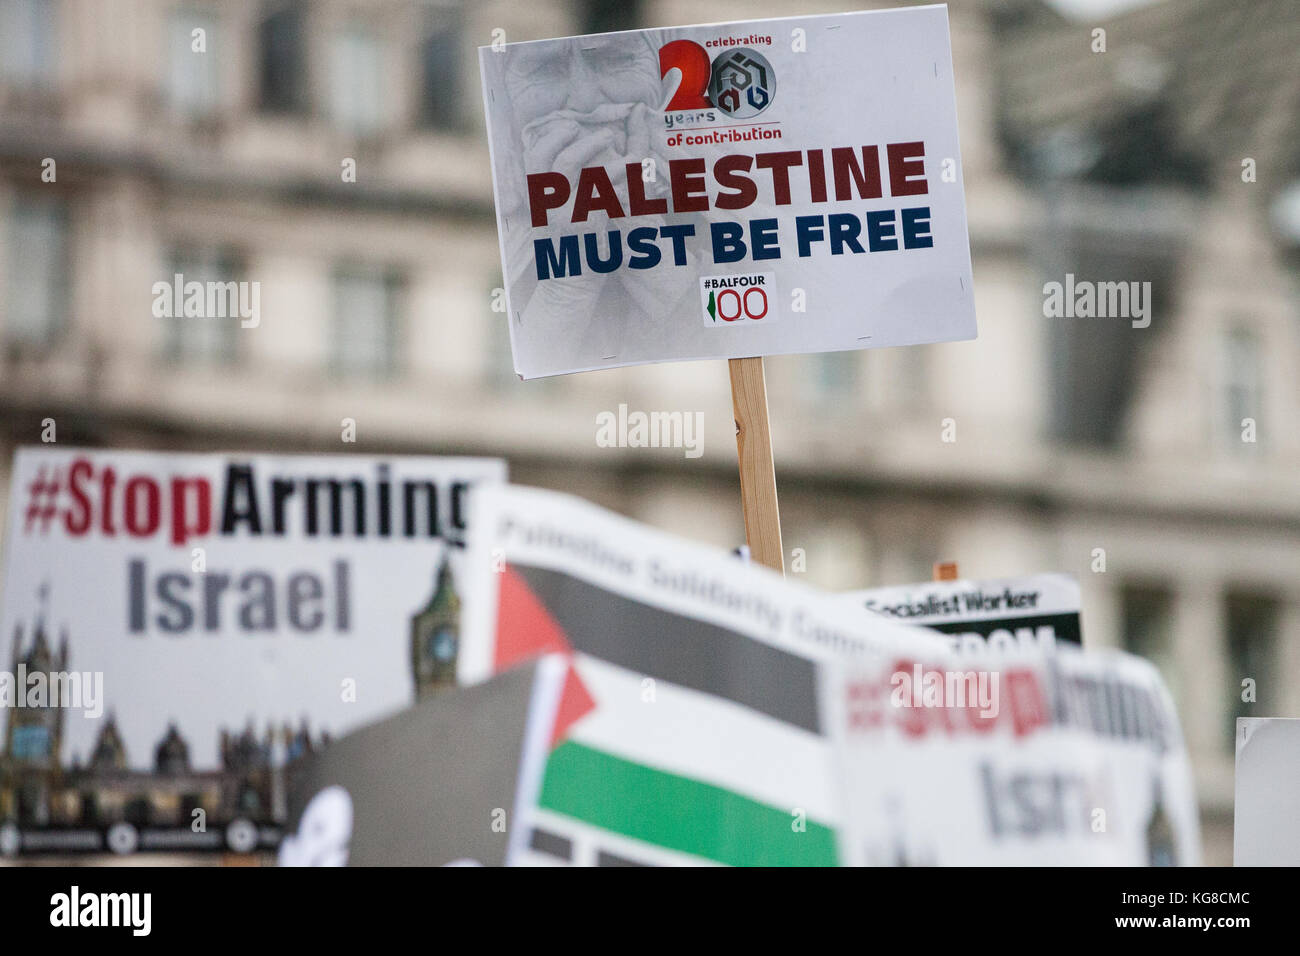 London, UK. 4th November, 2017. Placards held by campaigners for Palestine marching through London to demand justice Stock Photo